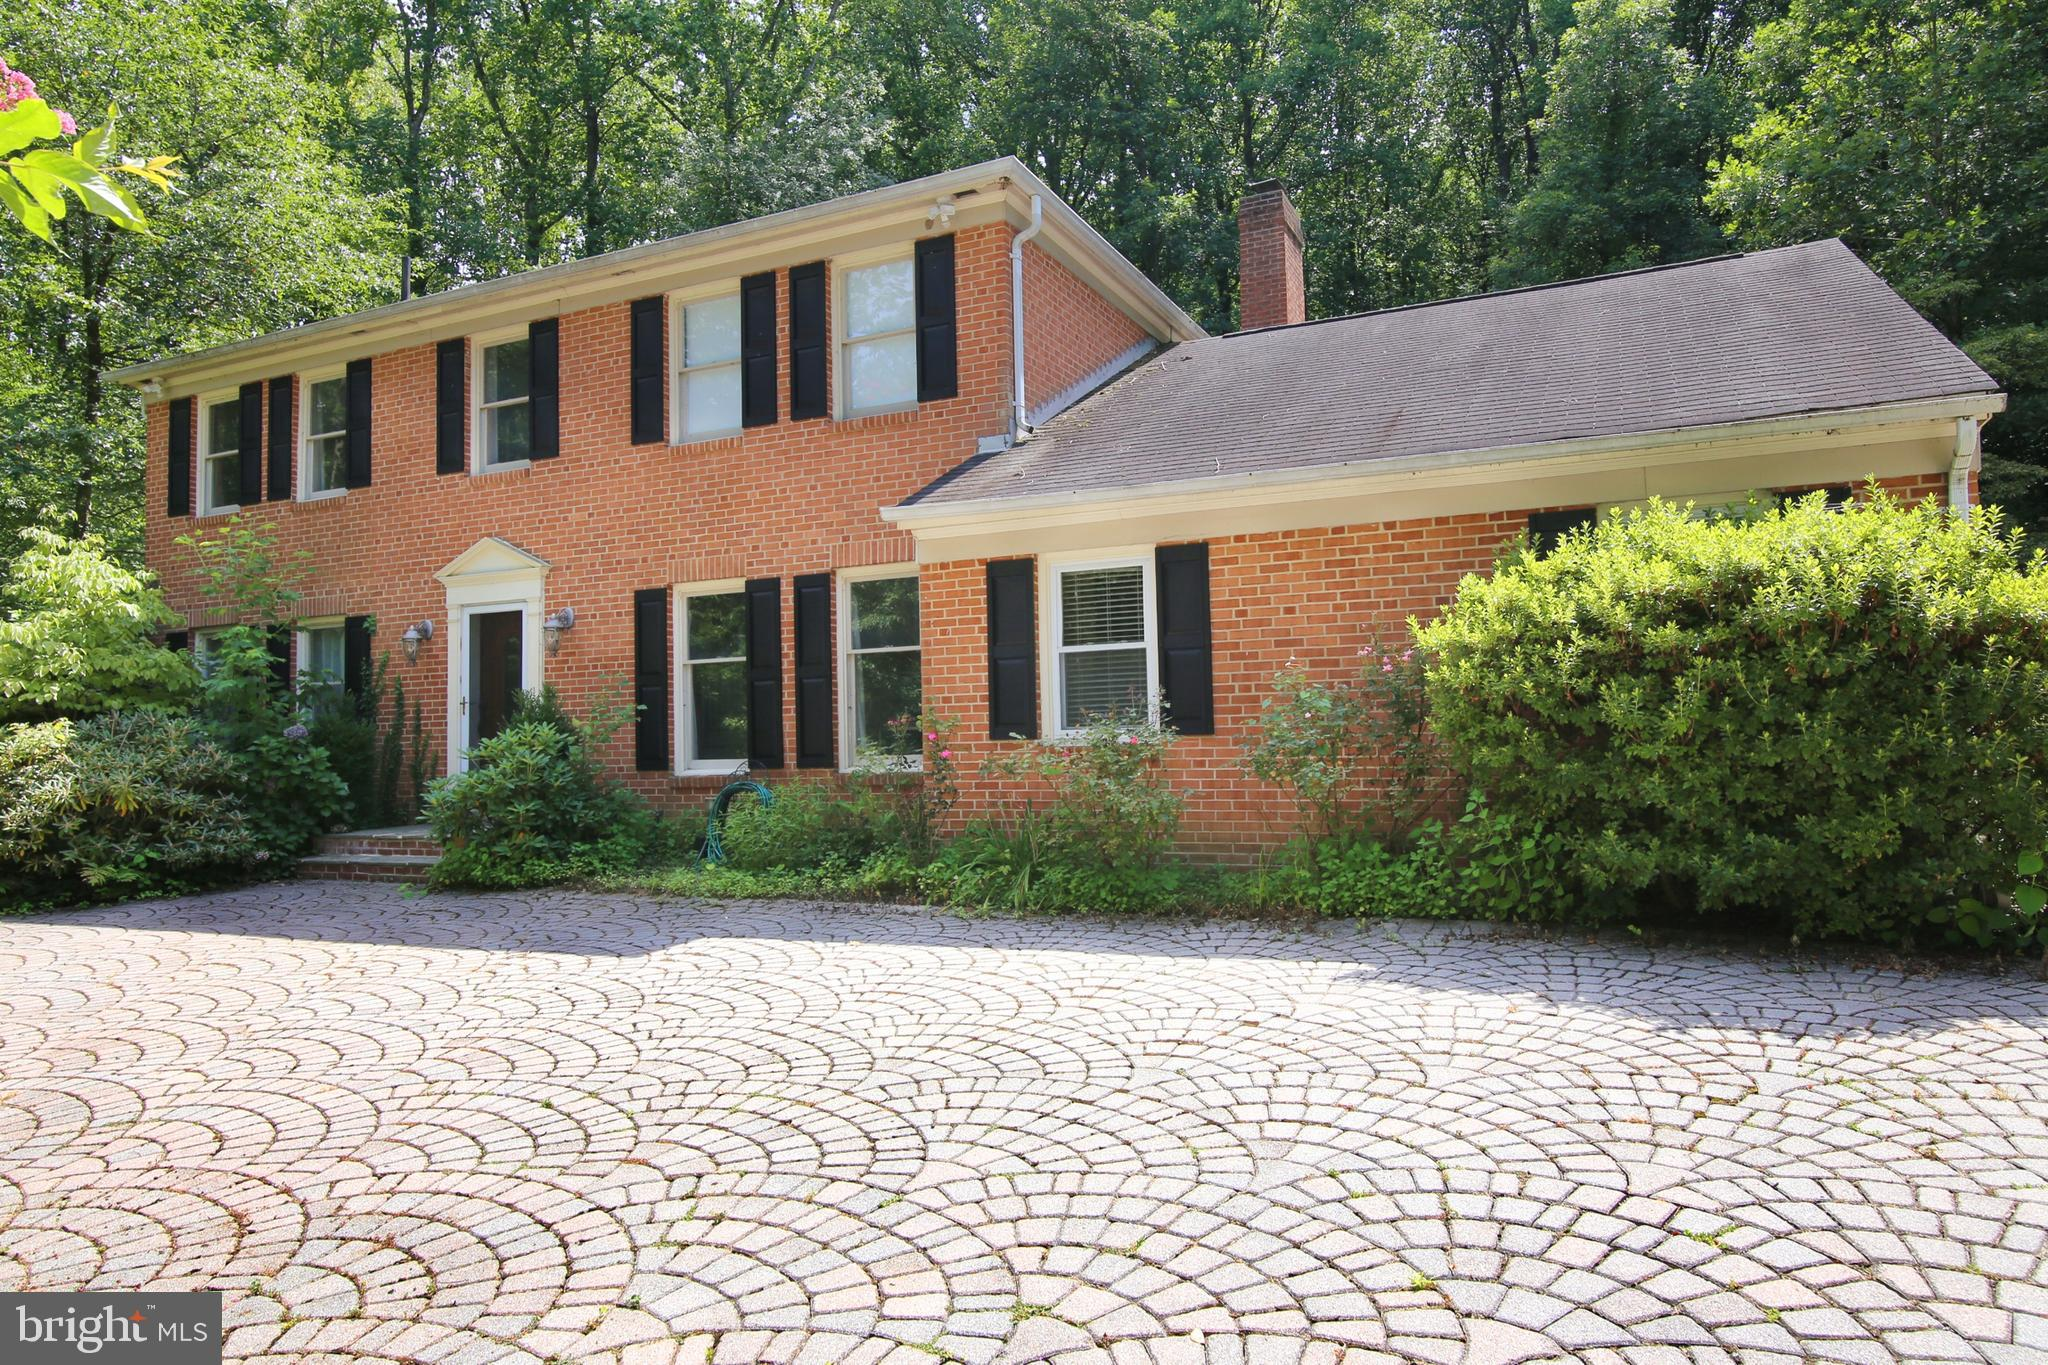 3534 MORNINGSIDE DRIVE, FAIRFAX, VA 22031